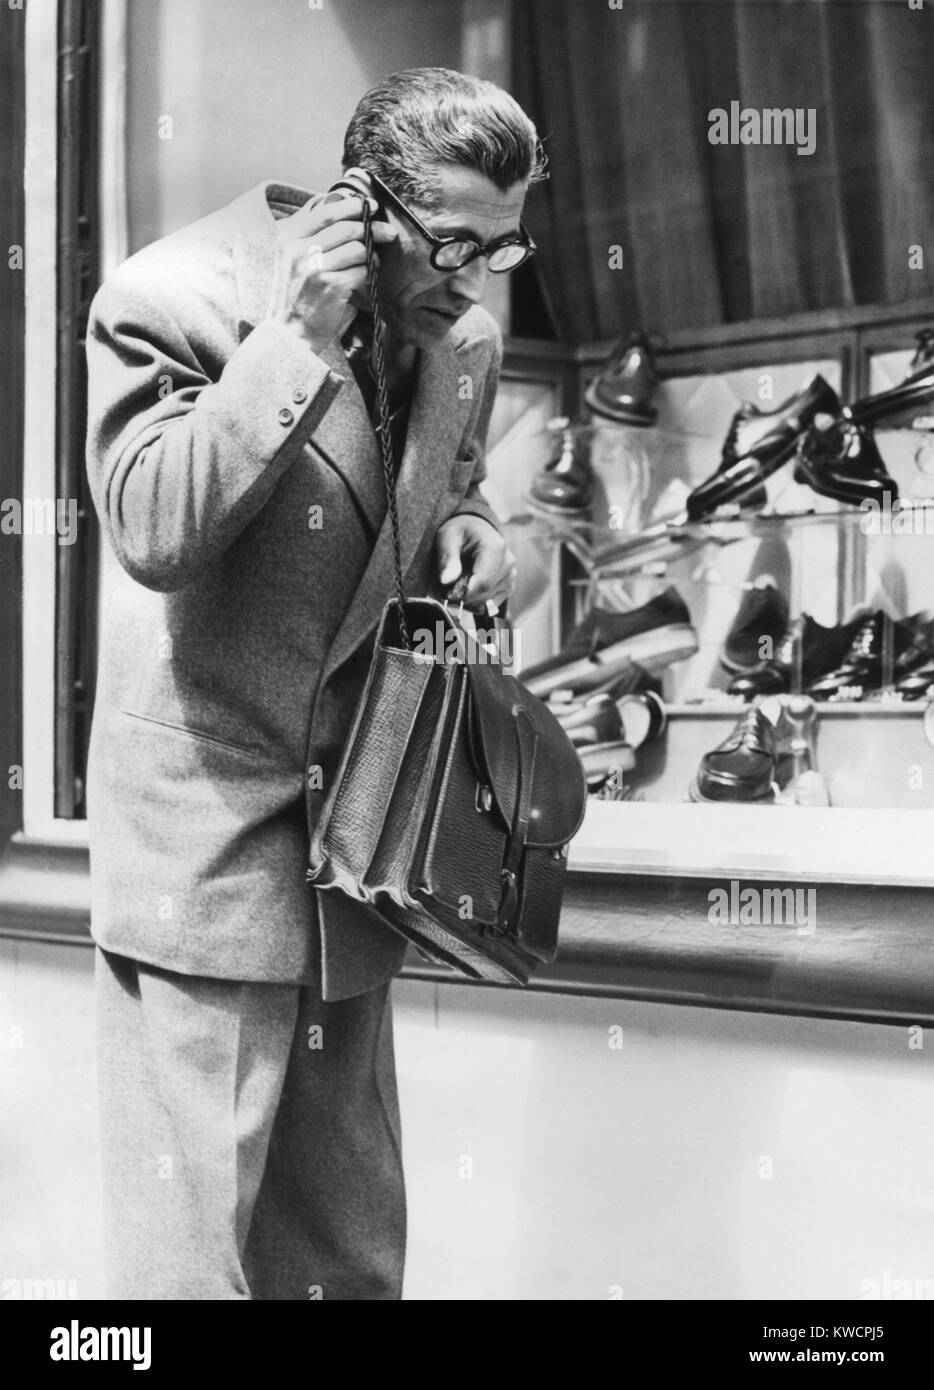 The 'Telephonogramme' in use of the streets of Paris, May 10, 1950. This was an early wireless mobile telephone - Stock Image